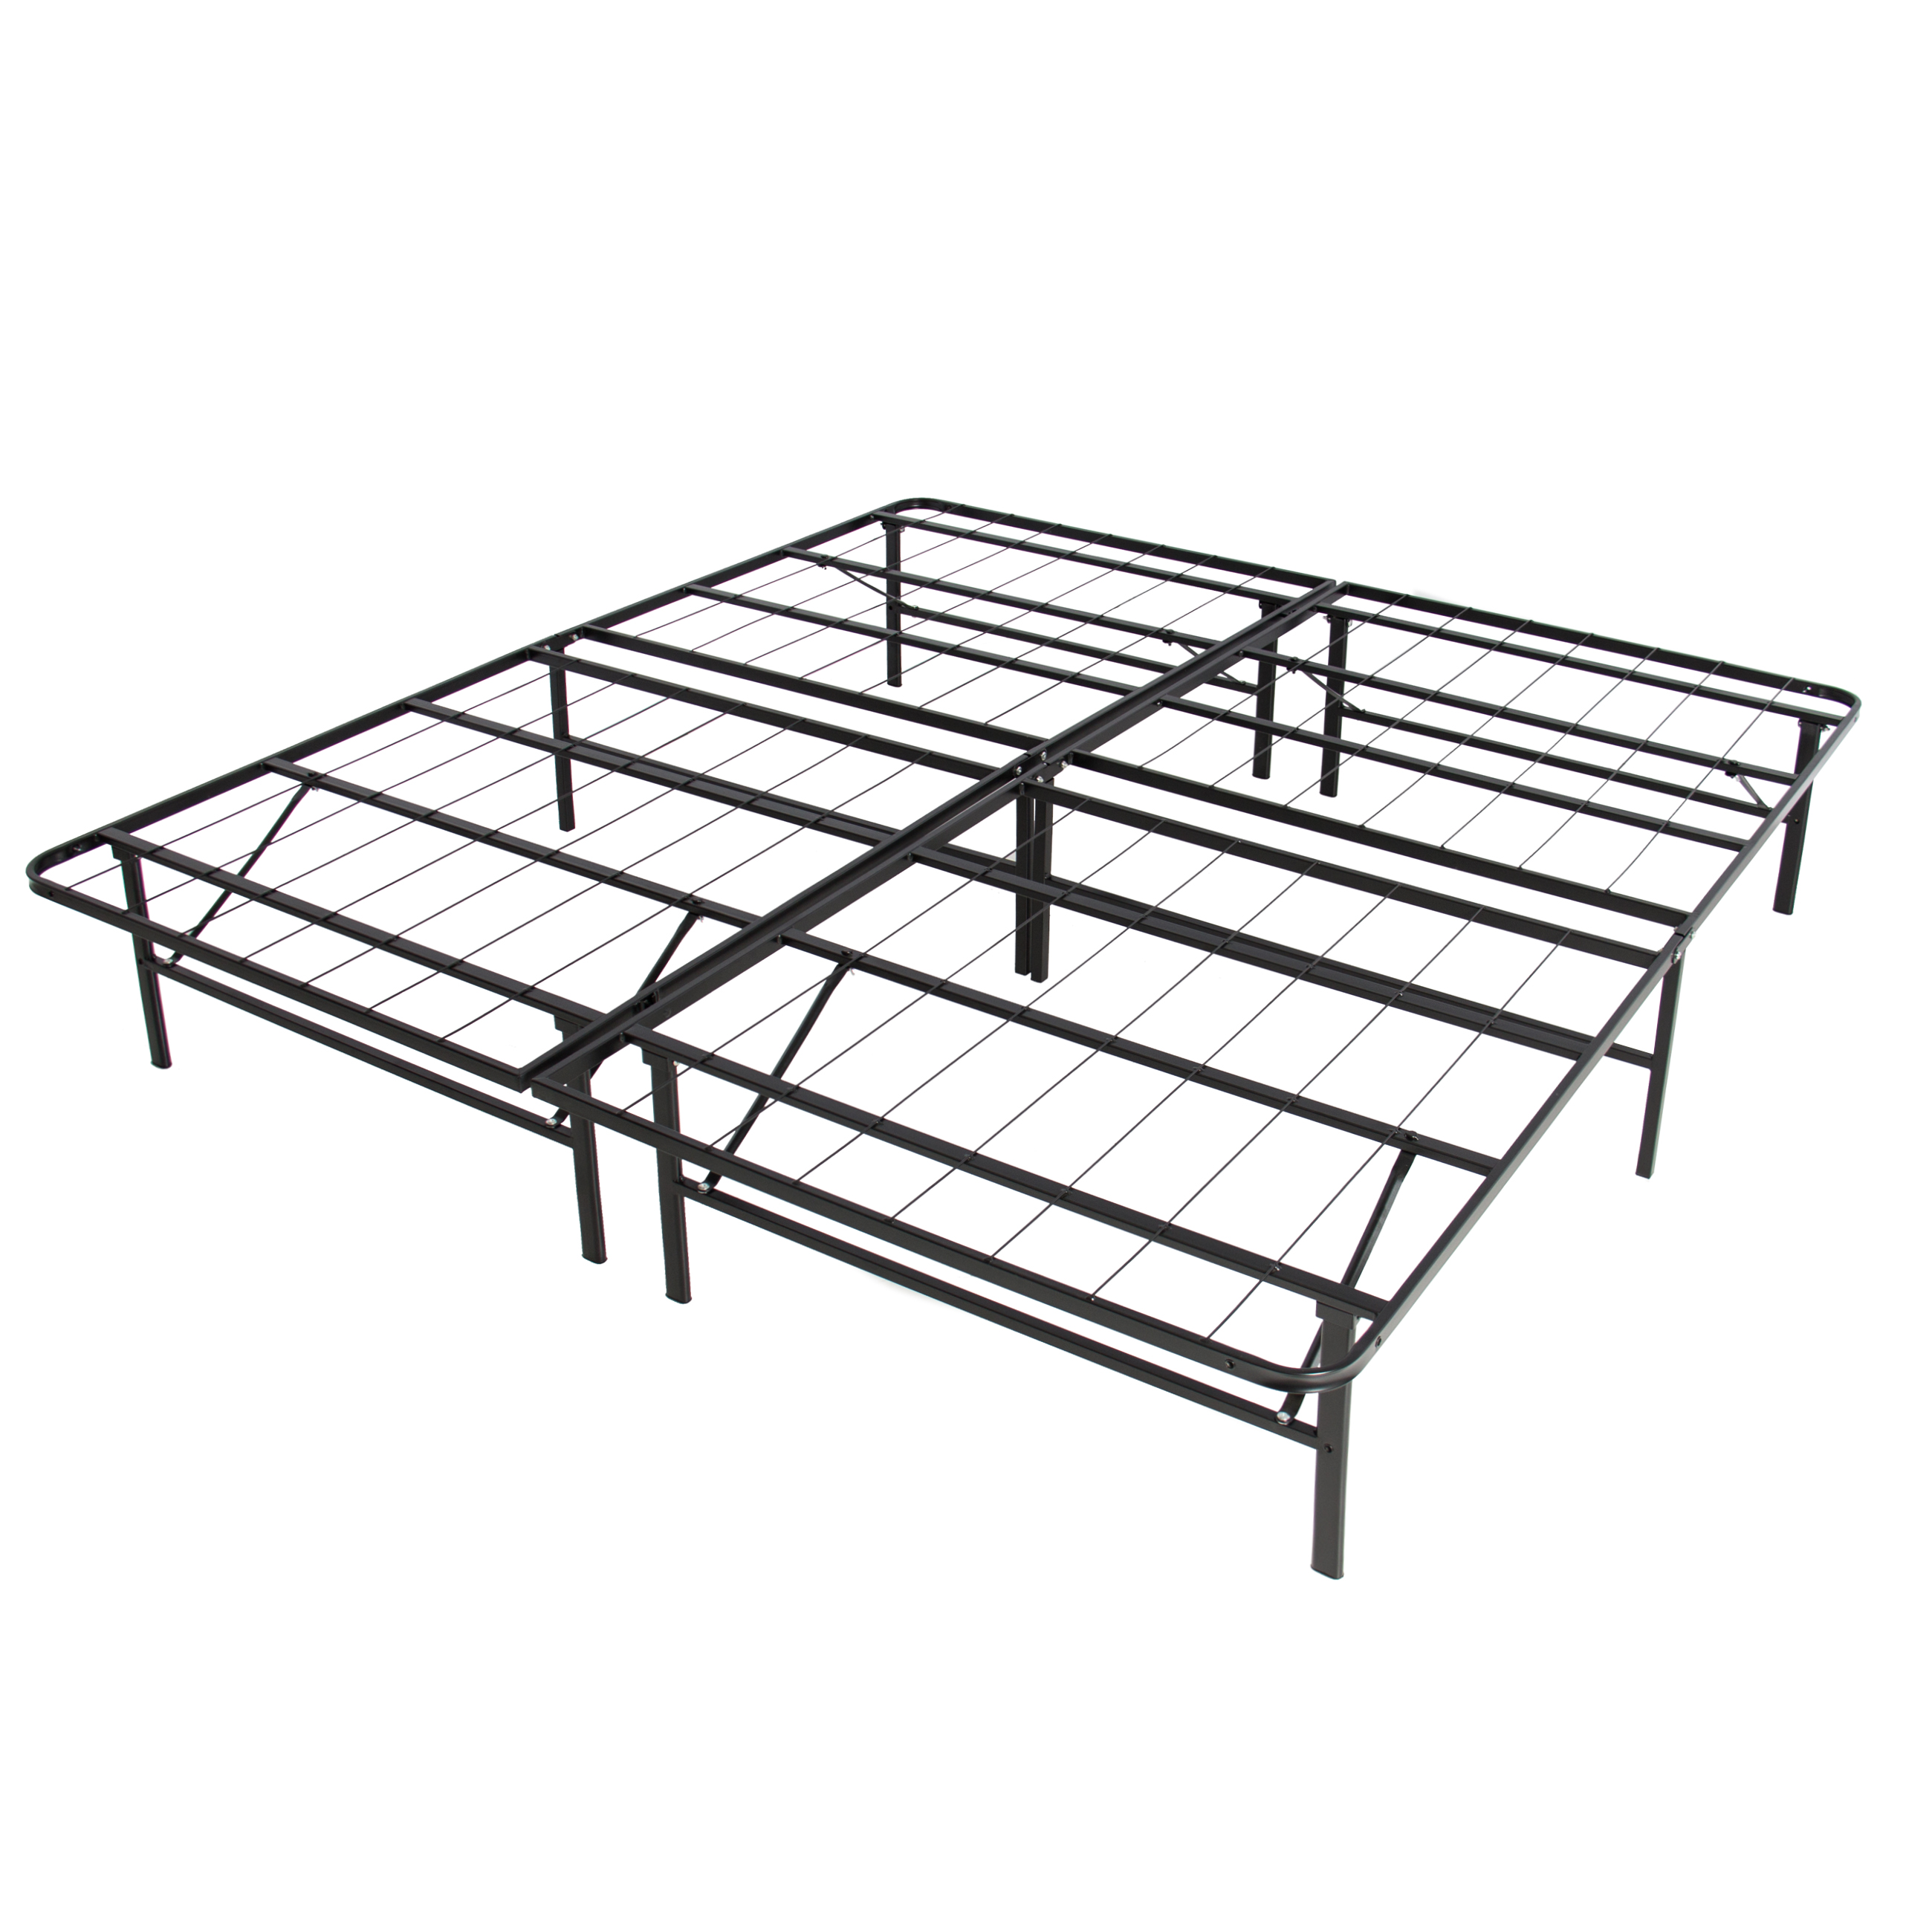 best choice products platform metal bed frame foldable no box spring I Beam Mounting best choice products platform metal bed frame foldable no box spring needed mattress foundation queen walmart